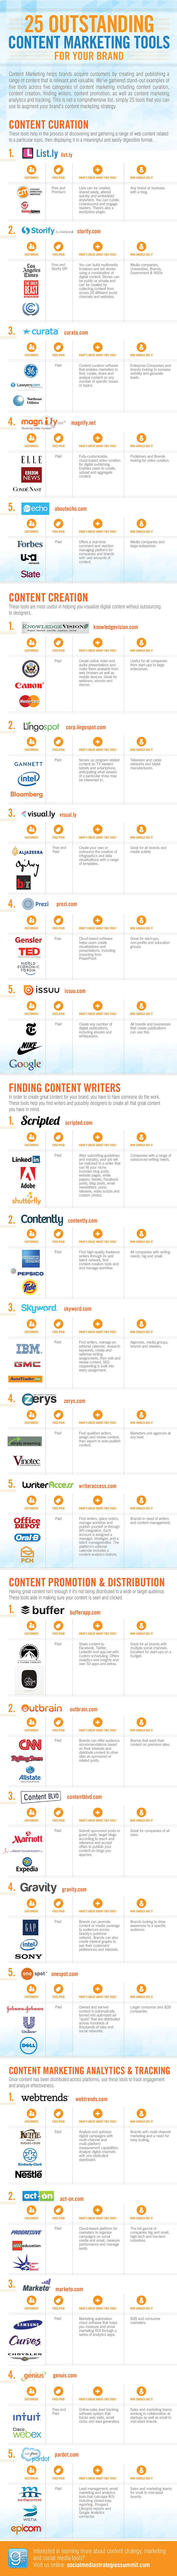 25 Awesome Content Marketing Tools To Use In 2014 [INFOGRAPHIC]